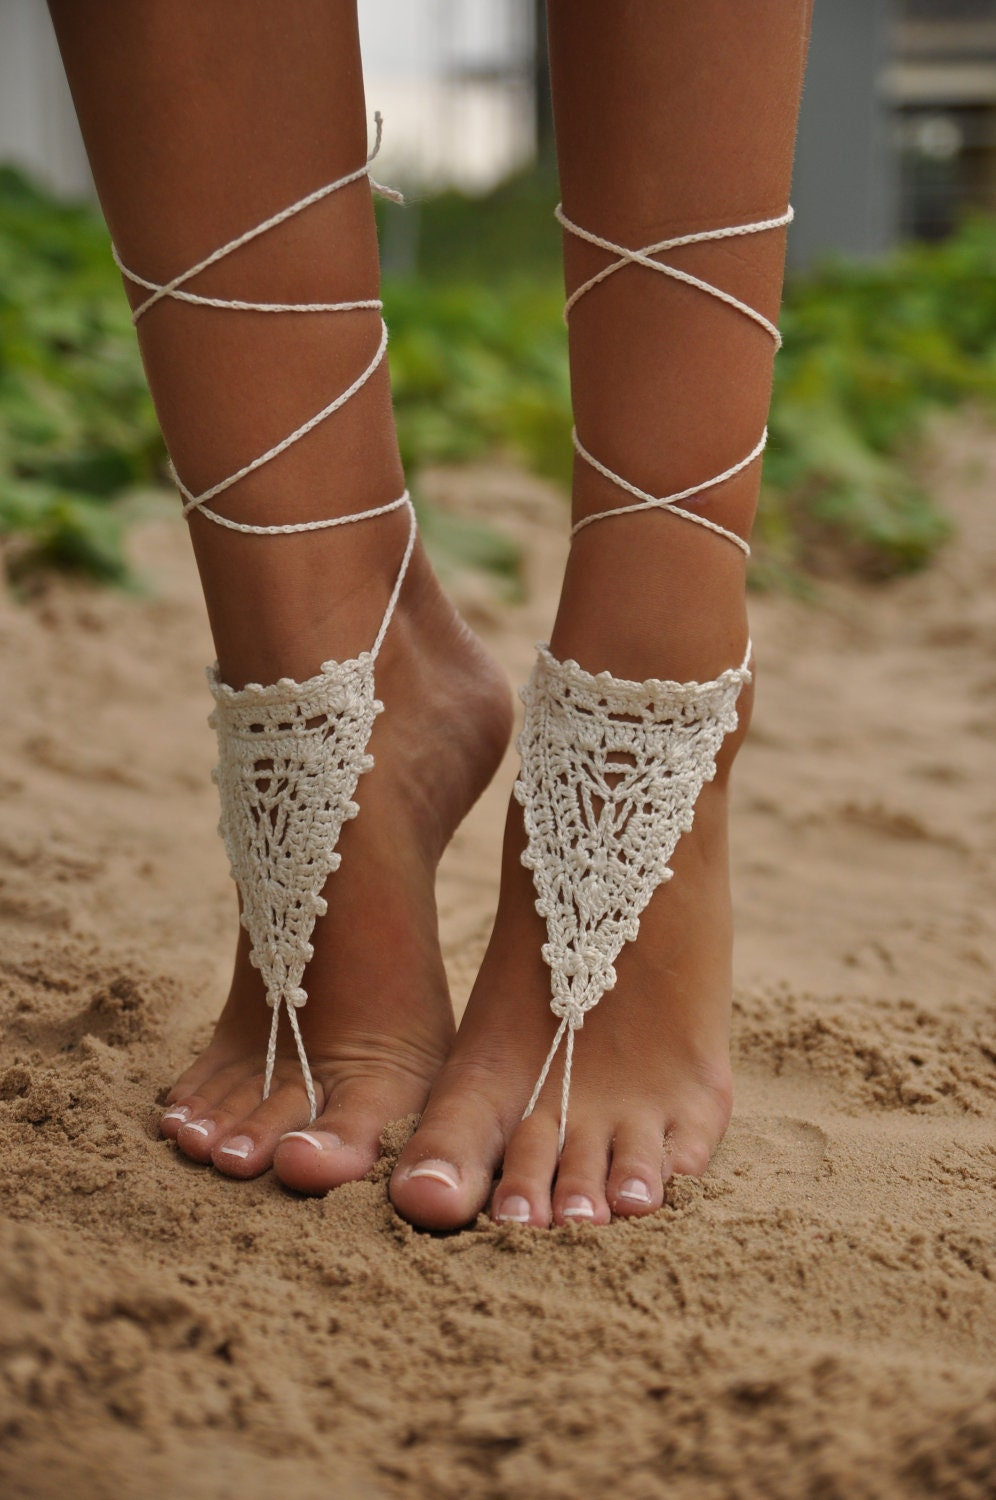 Crochet Ivory Barefoot Sandals, Beach Wedding shoes, Bride Foot jewelry, Brides sandals, Boho lace sandals, Sandals women, Soleless sandals